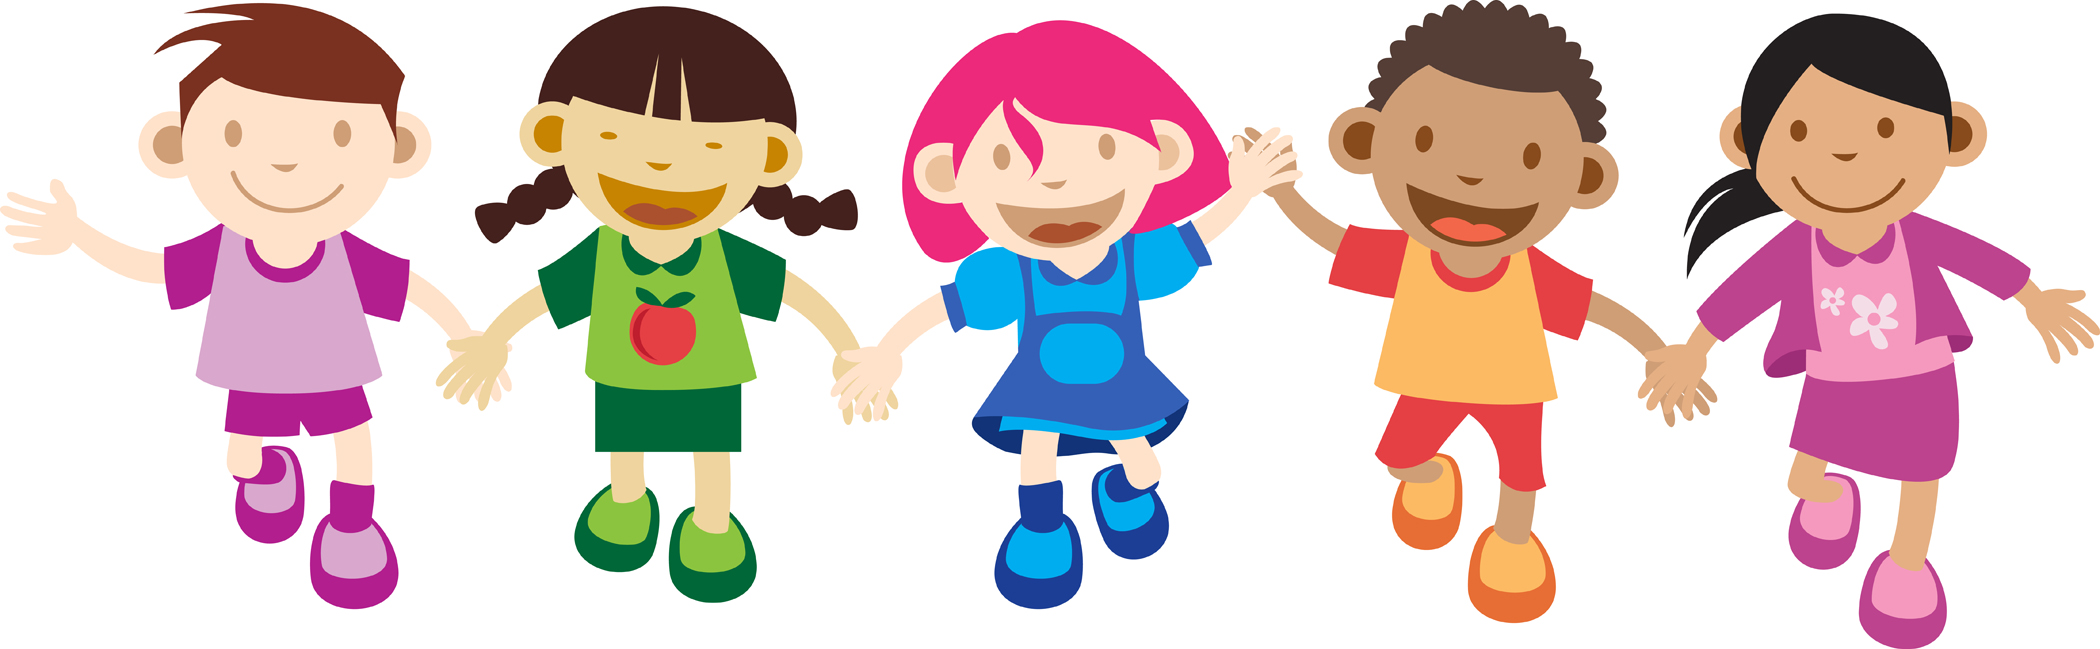 Cartoon Images Of Children Learning Background 1 Hd.